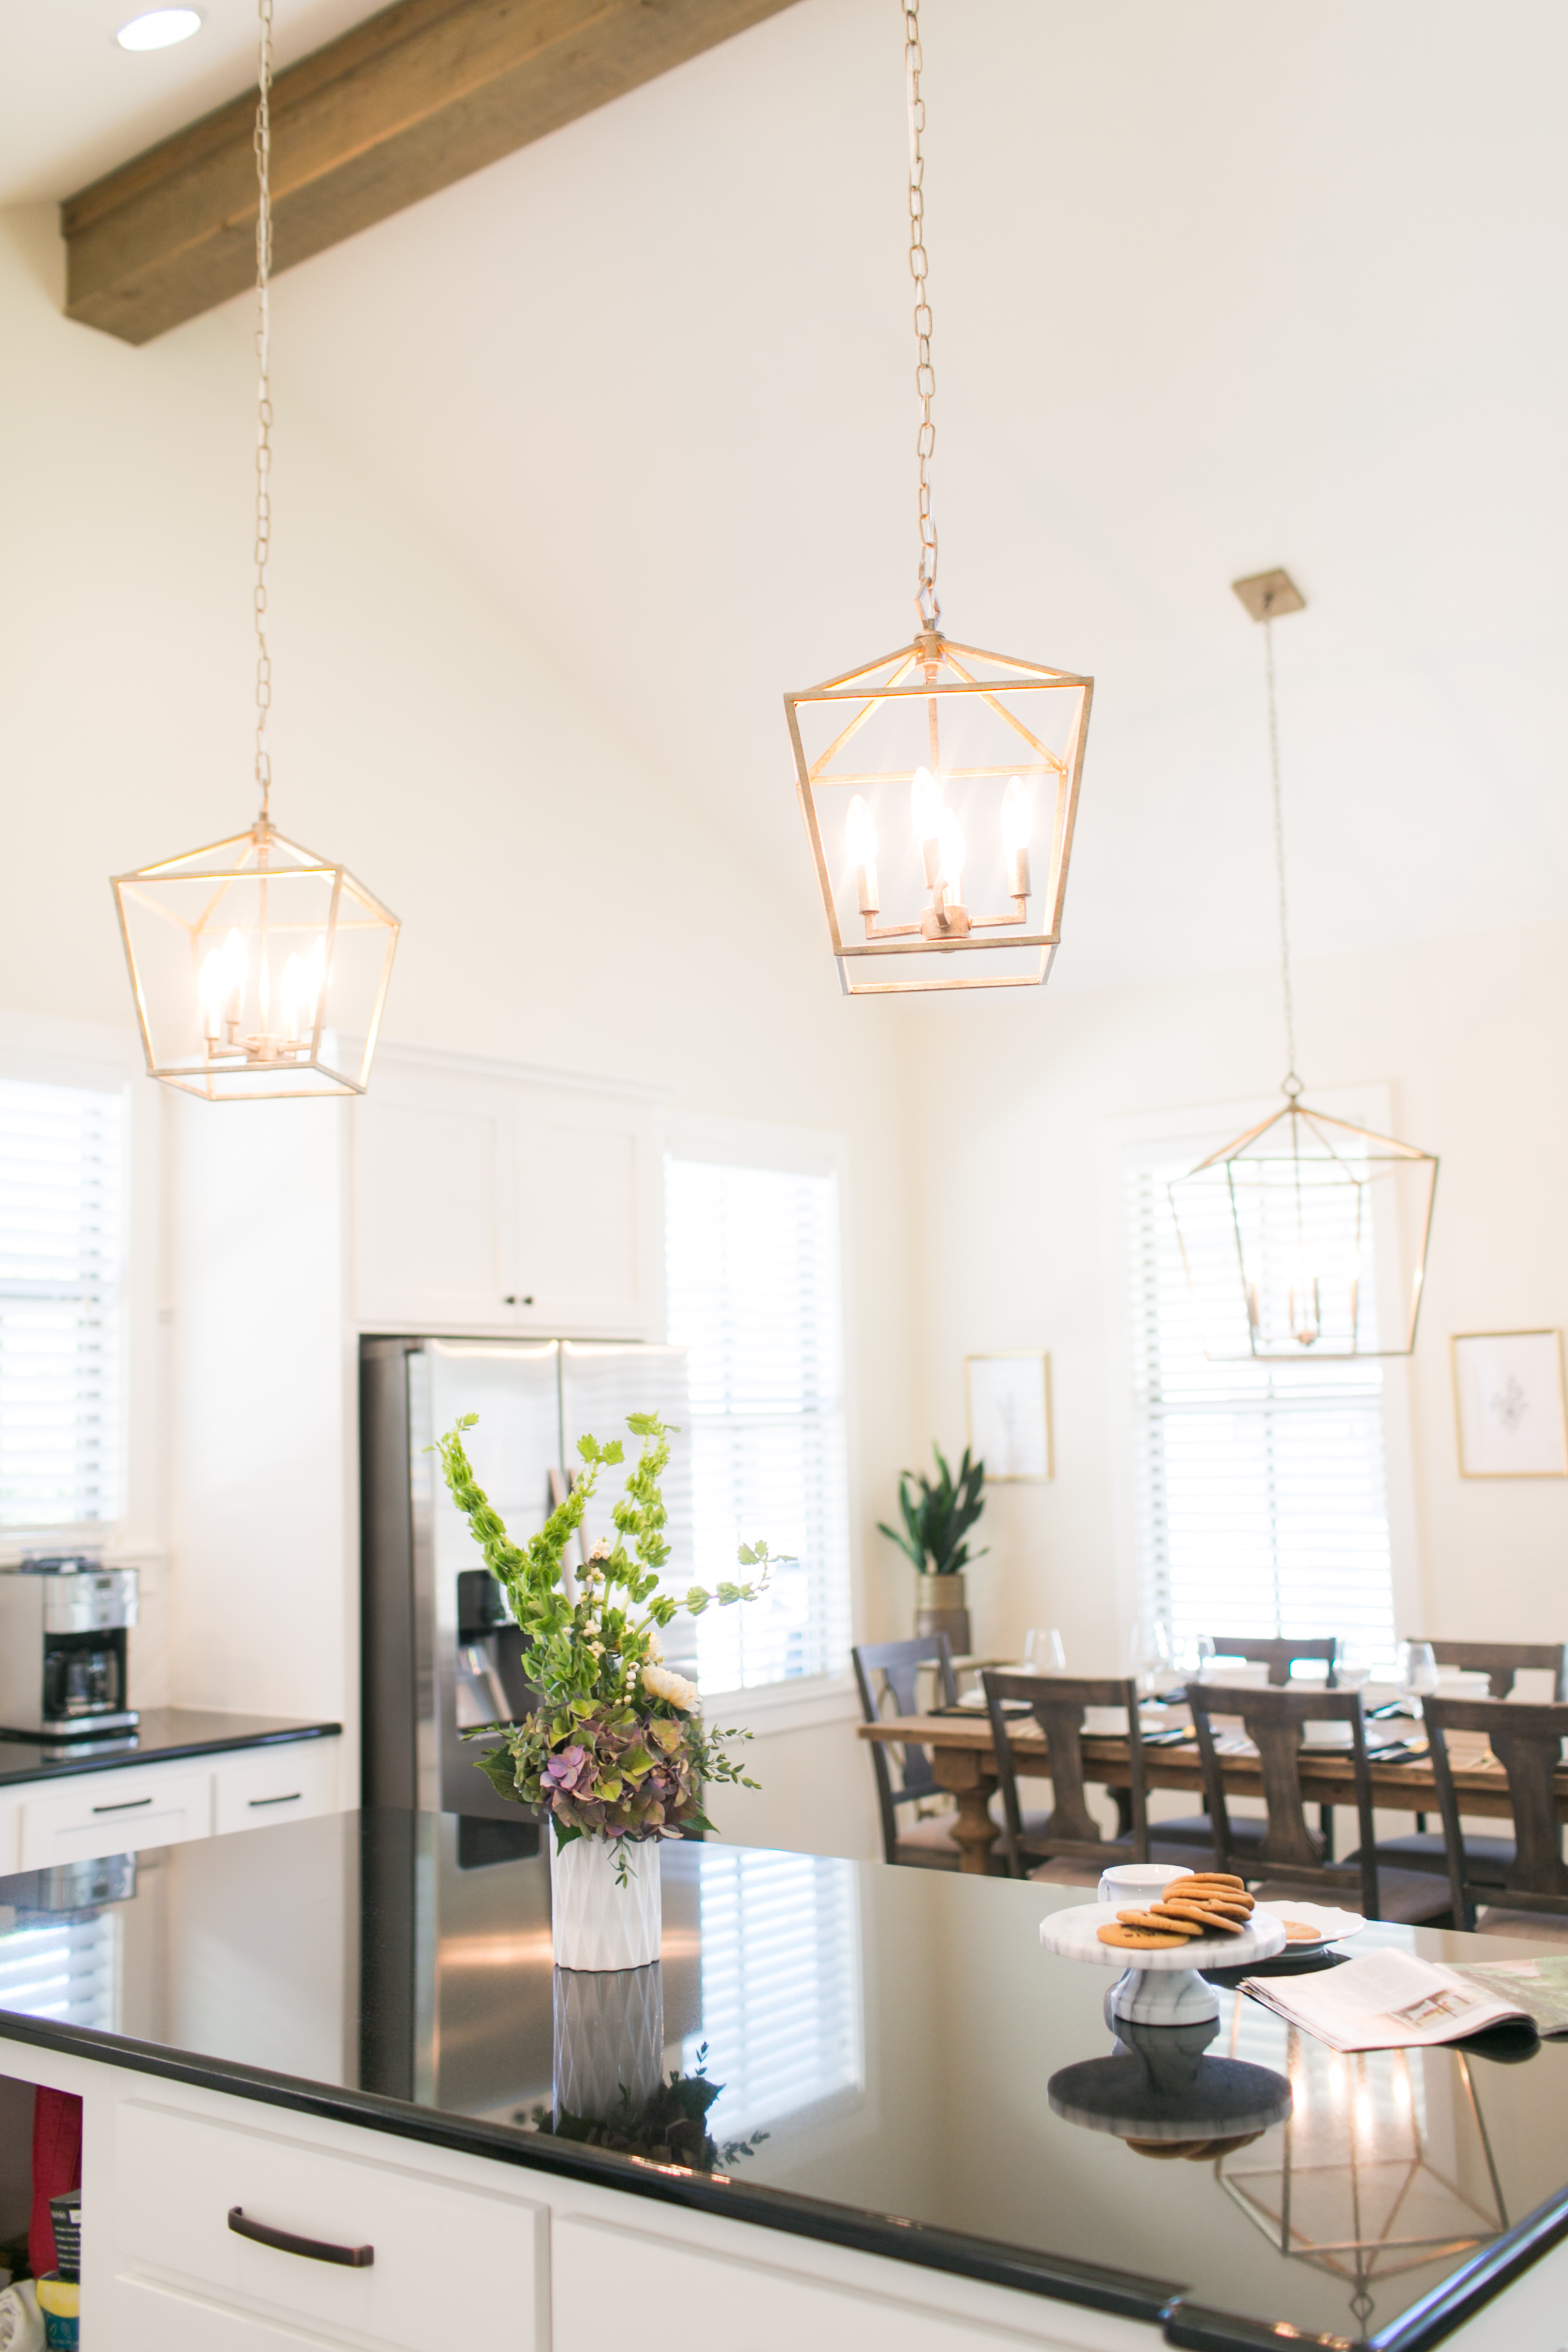 household lighting fixtures. Lighting In Homes. Avenues Of Waco Project | Barn Light Homes Household Fixtures